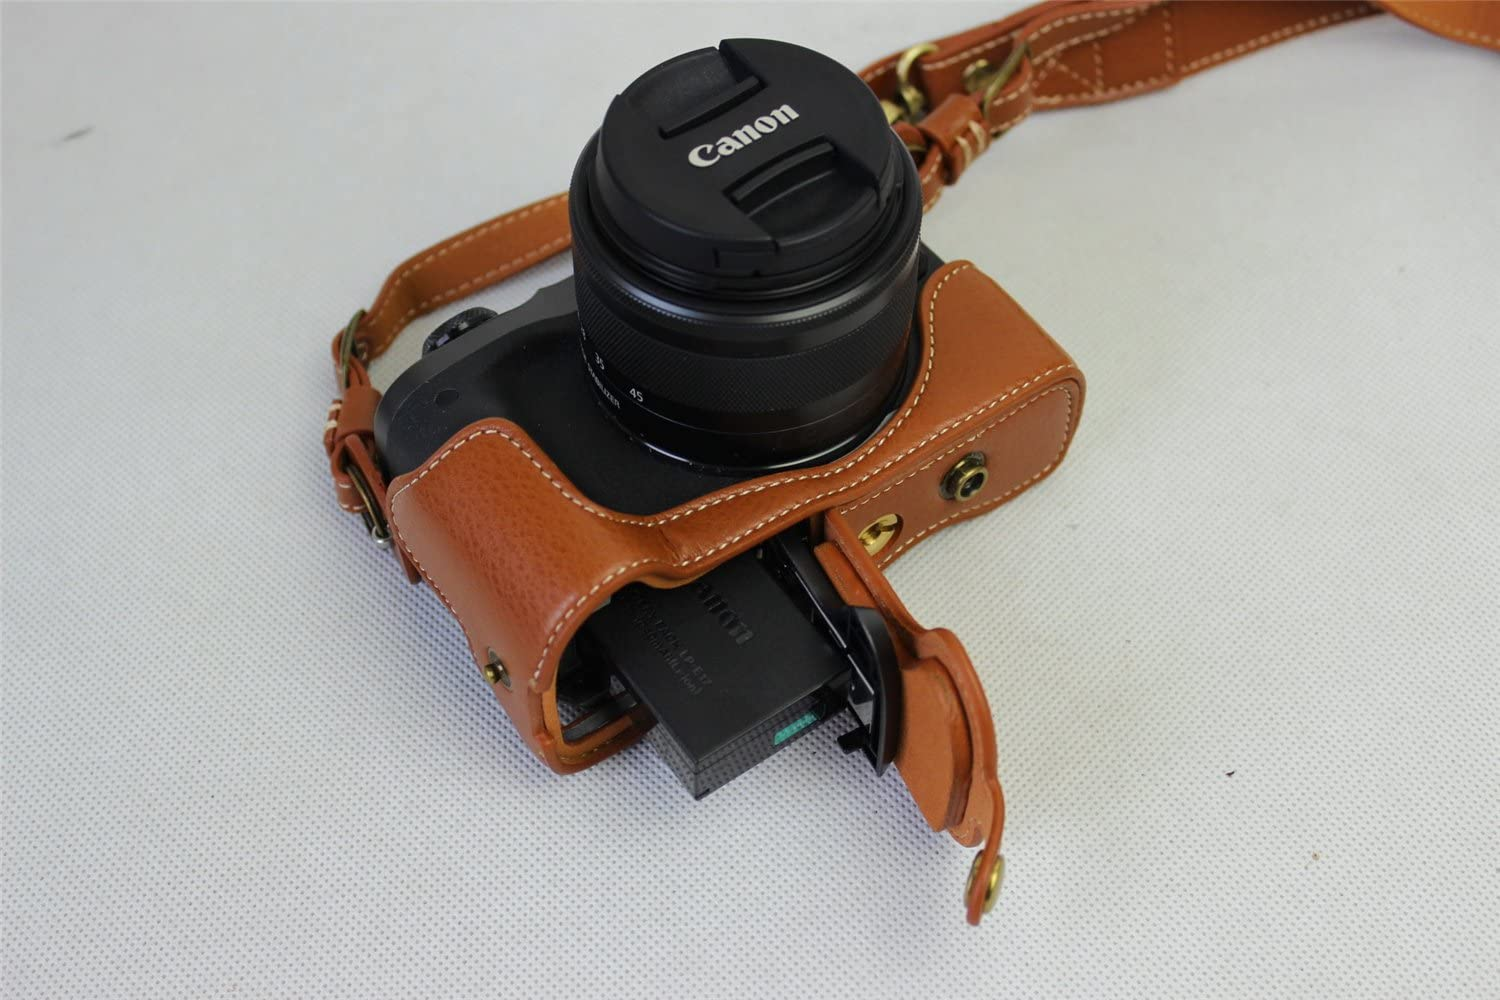 BolinUS Real Genuine Handmade Leather FullBody Camera Case Bag Cover for Canon Eos M6 with 15-45mm lens Bottom Opening Version Canon Eos M6 Case Neck Strap Mini Storage Bag -Brown